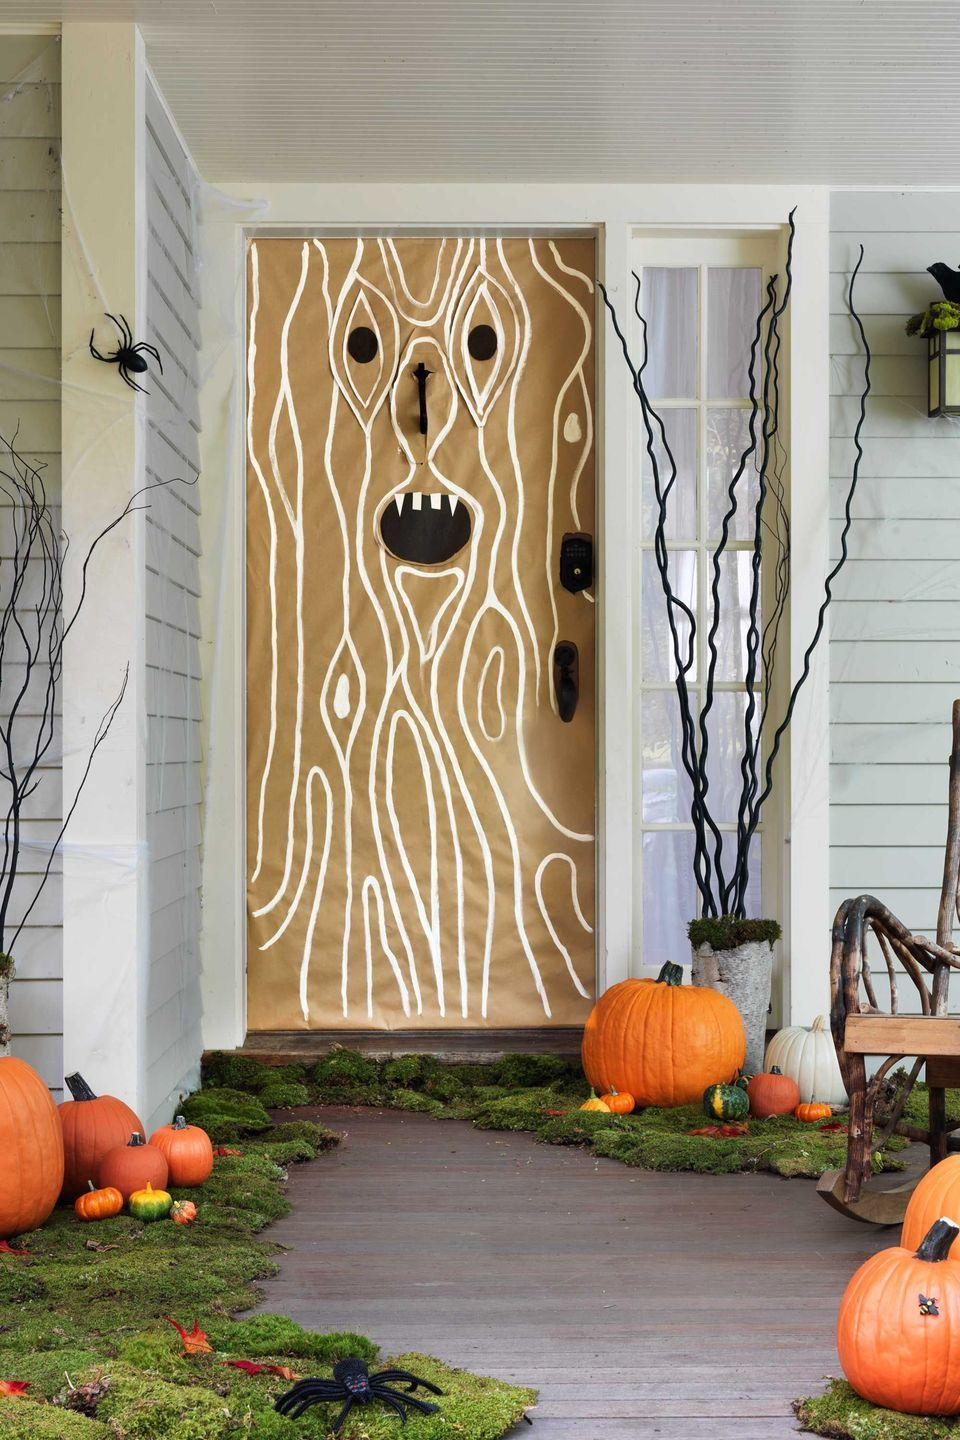 <p>Trick out your front porch with a layer of moss, spiderwebs and critters — plus a menacing tree trunk on the door. Use painter's tape to affix brown kraft paper onto your door, making slits for the handle and knocker. Cut eyes and a mouth out of black construction paper; tape or glue them onto the kraft paper. For the wood grain: Take white craft paint and draw curved lines first around the facial features, then vertically on the door. Place preserved green moss along the edges of your front steps or porch.</p>